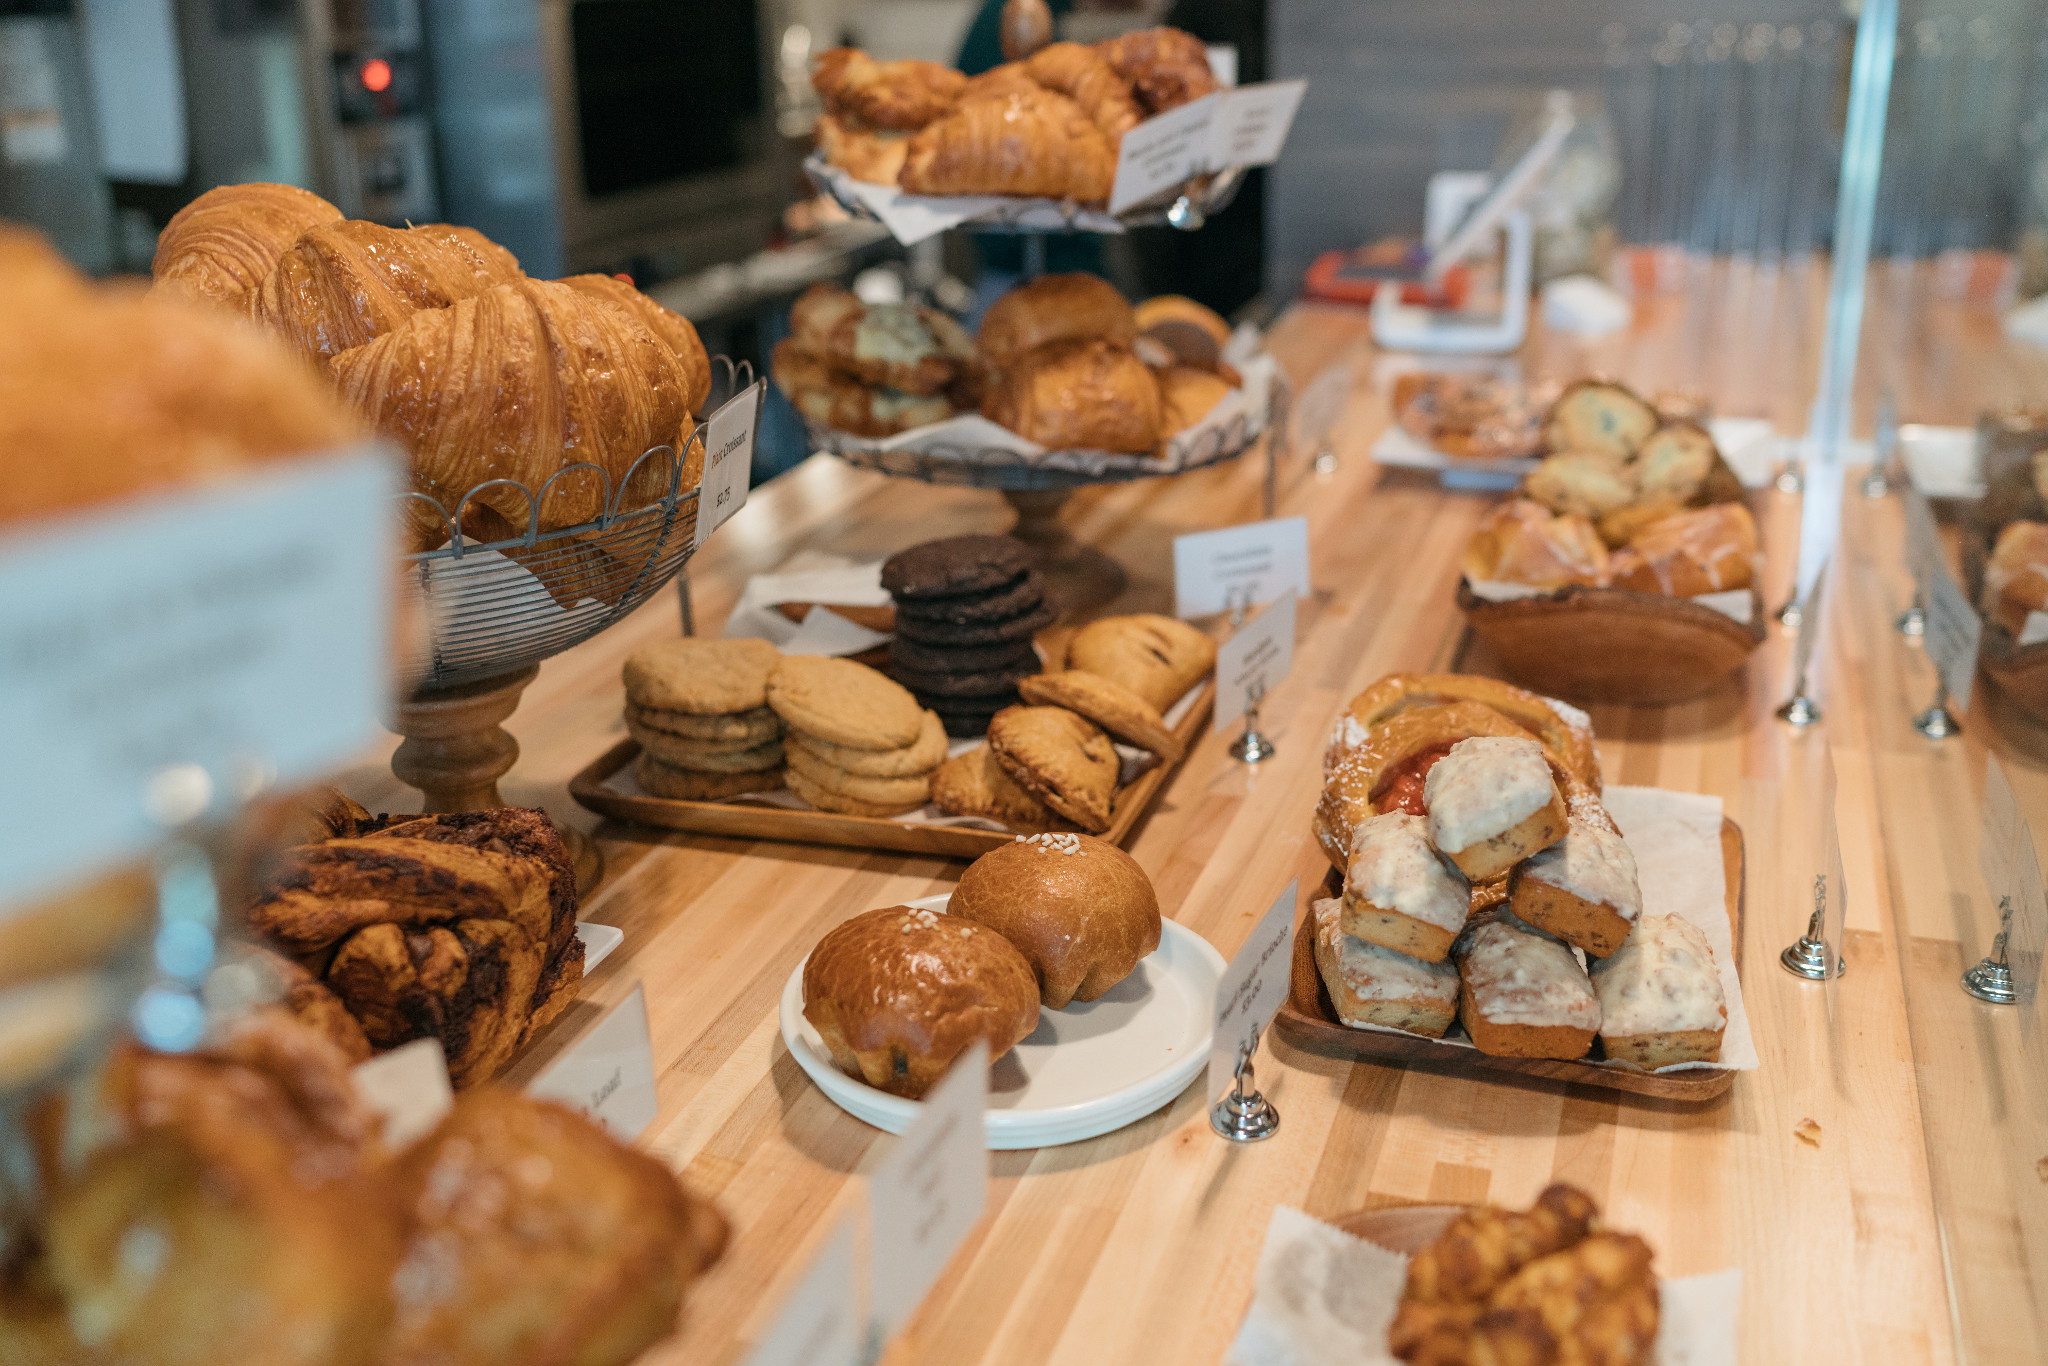 A delicious selection of pastries at Gracious Bakery. (Photo: Paul Broussard)